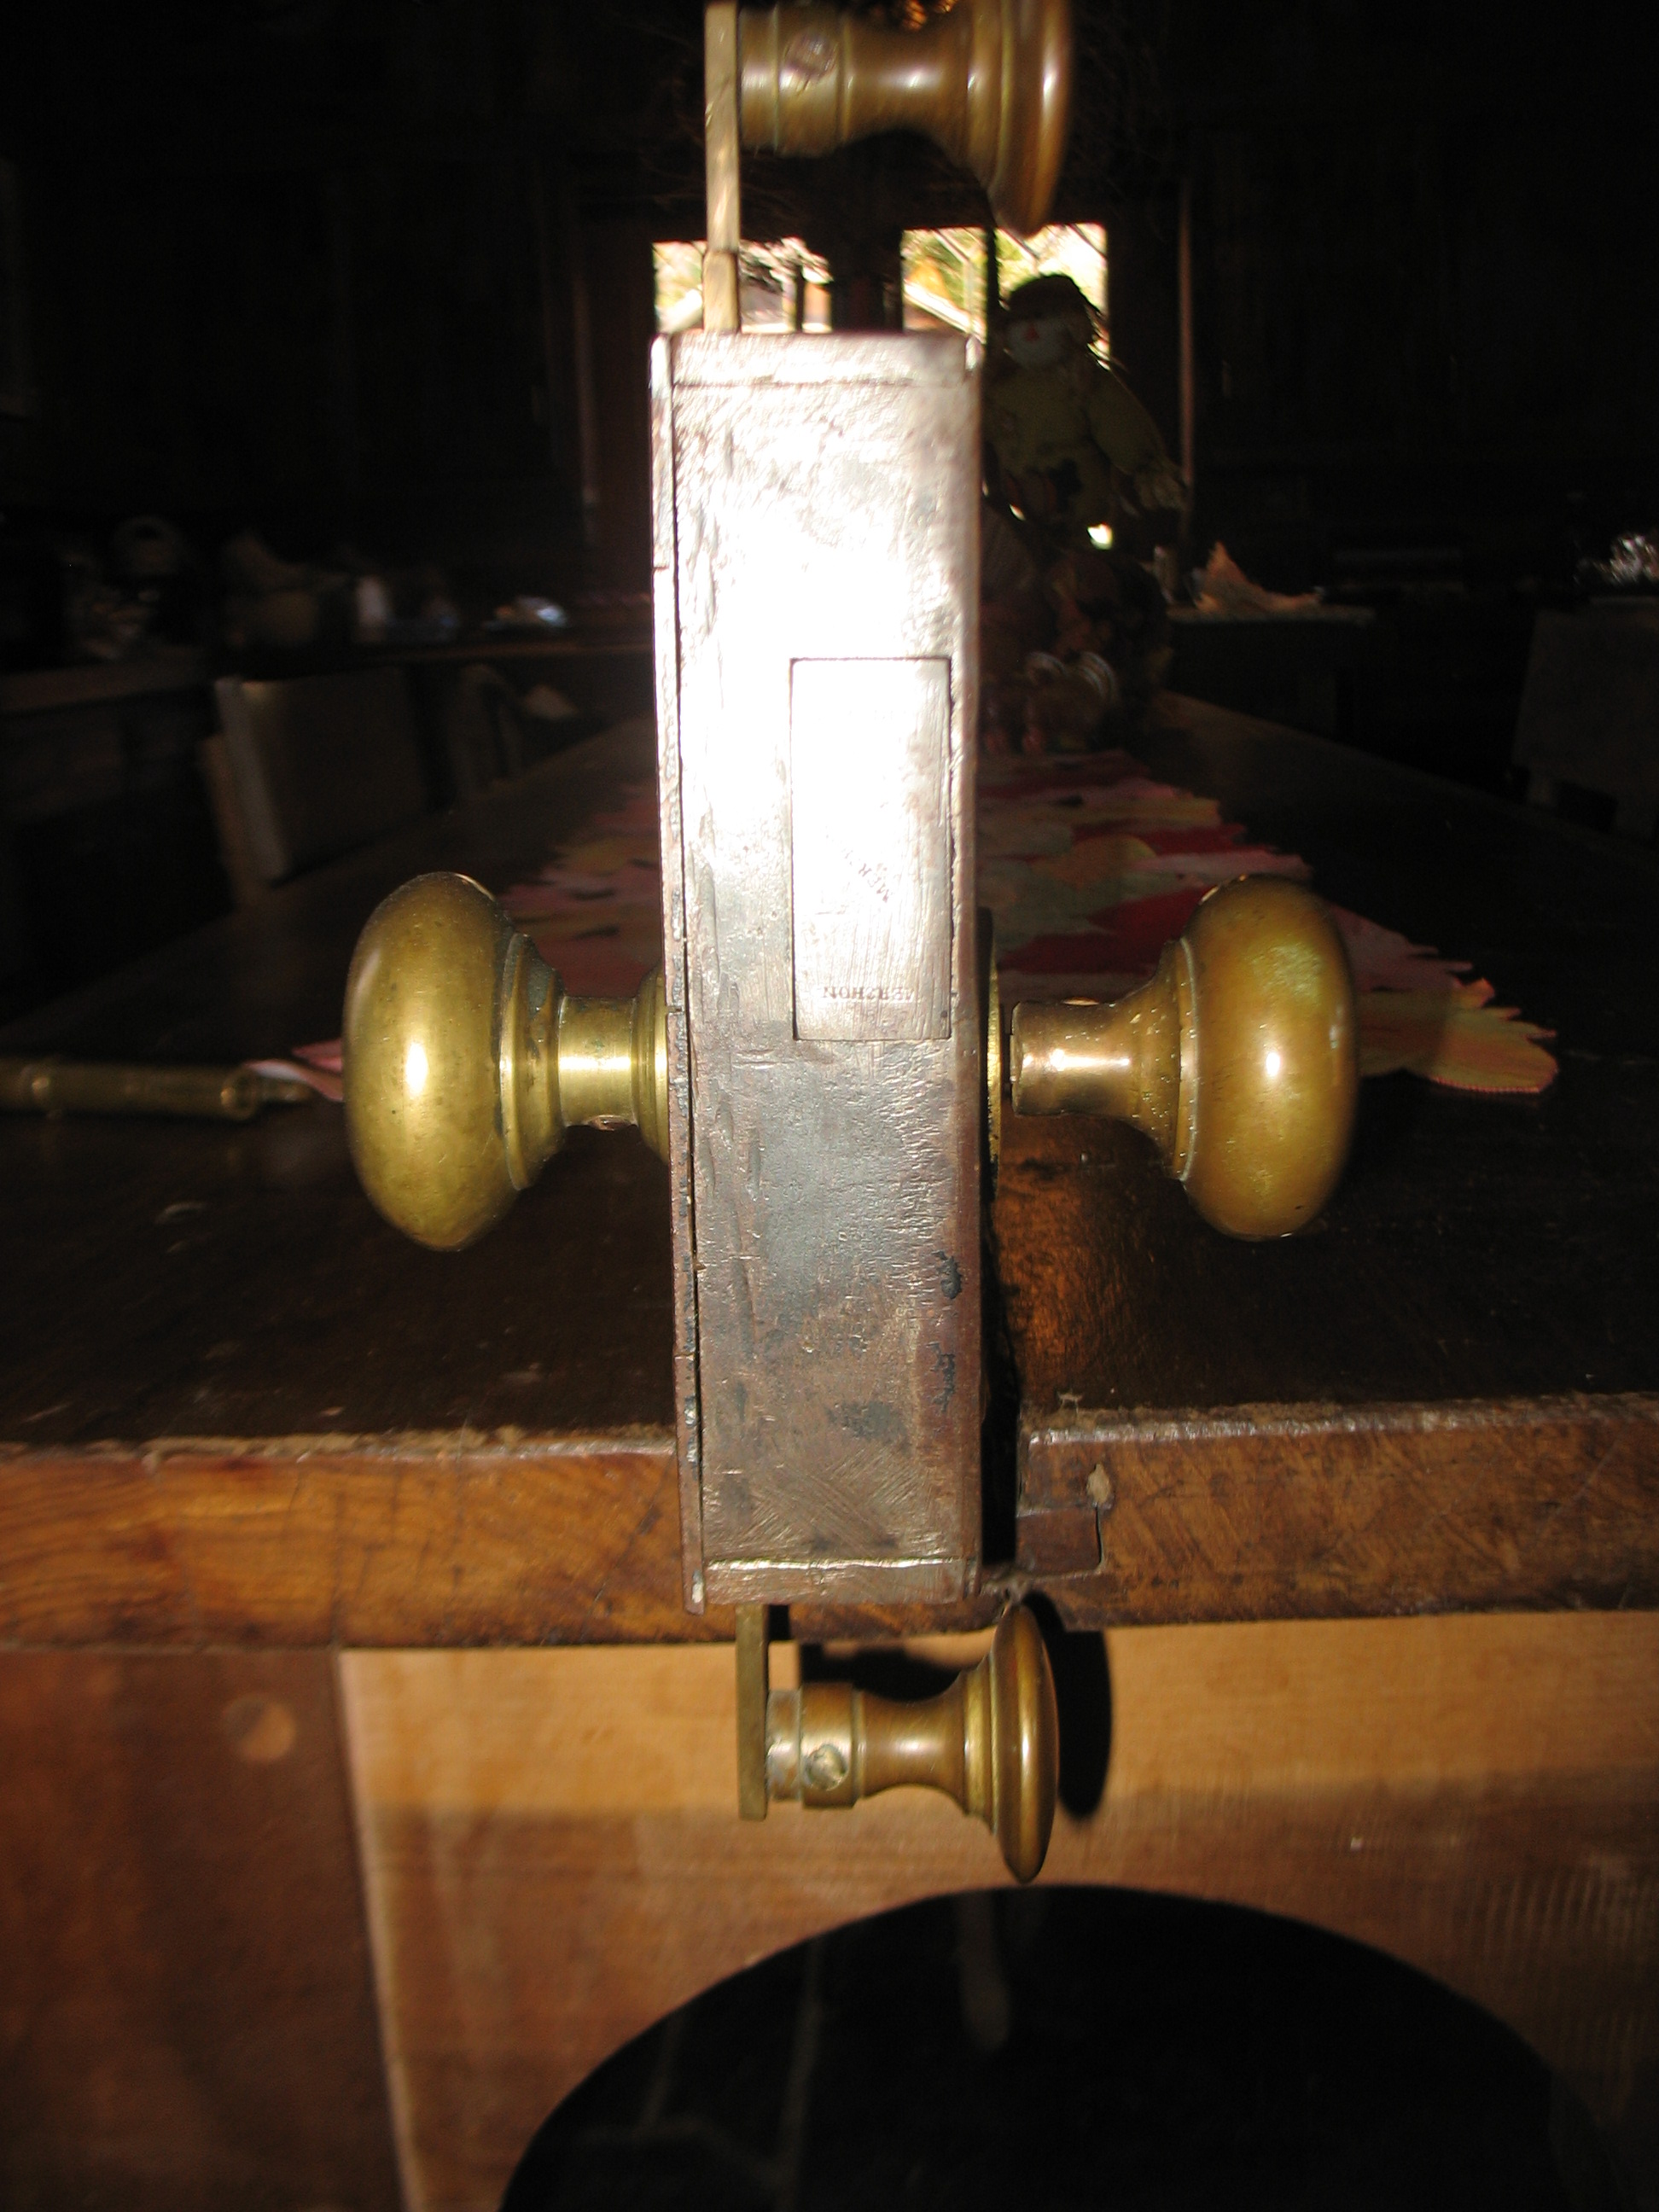 This shows the side of the lock  and its thickness.  The knob in the top and the knob on the bottom move up and down and locks into something.